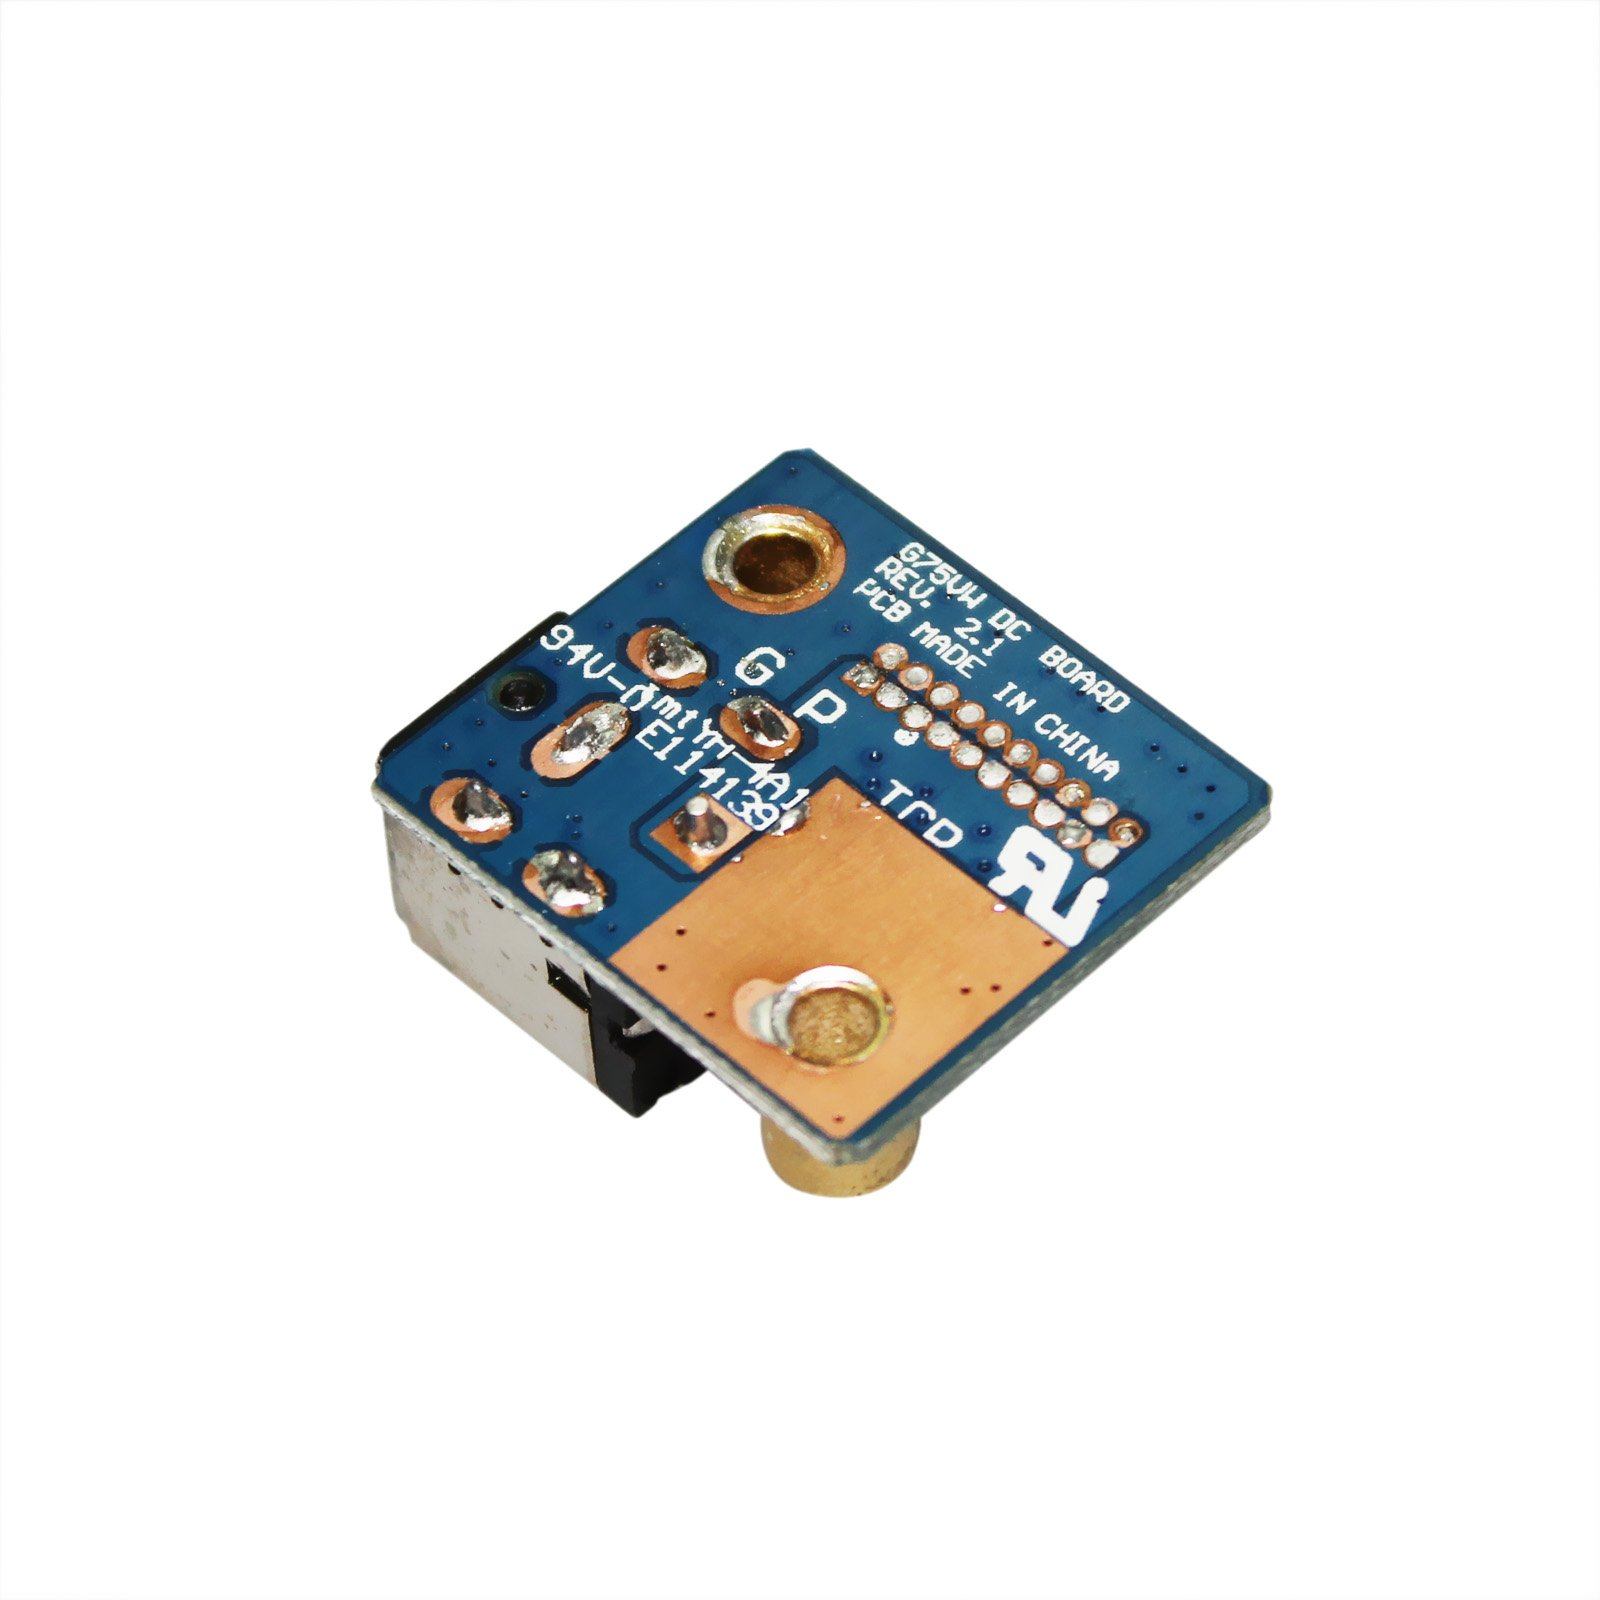 GinTai DC Power Jack Board Charging Port for Asus RoG G75 G75V G75VX G75VW G75VM G75VX-BHI7N1 69N0NQC10C01 by GinTai (Image #5)